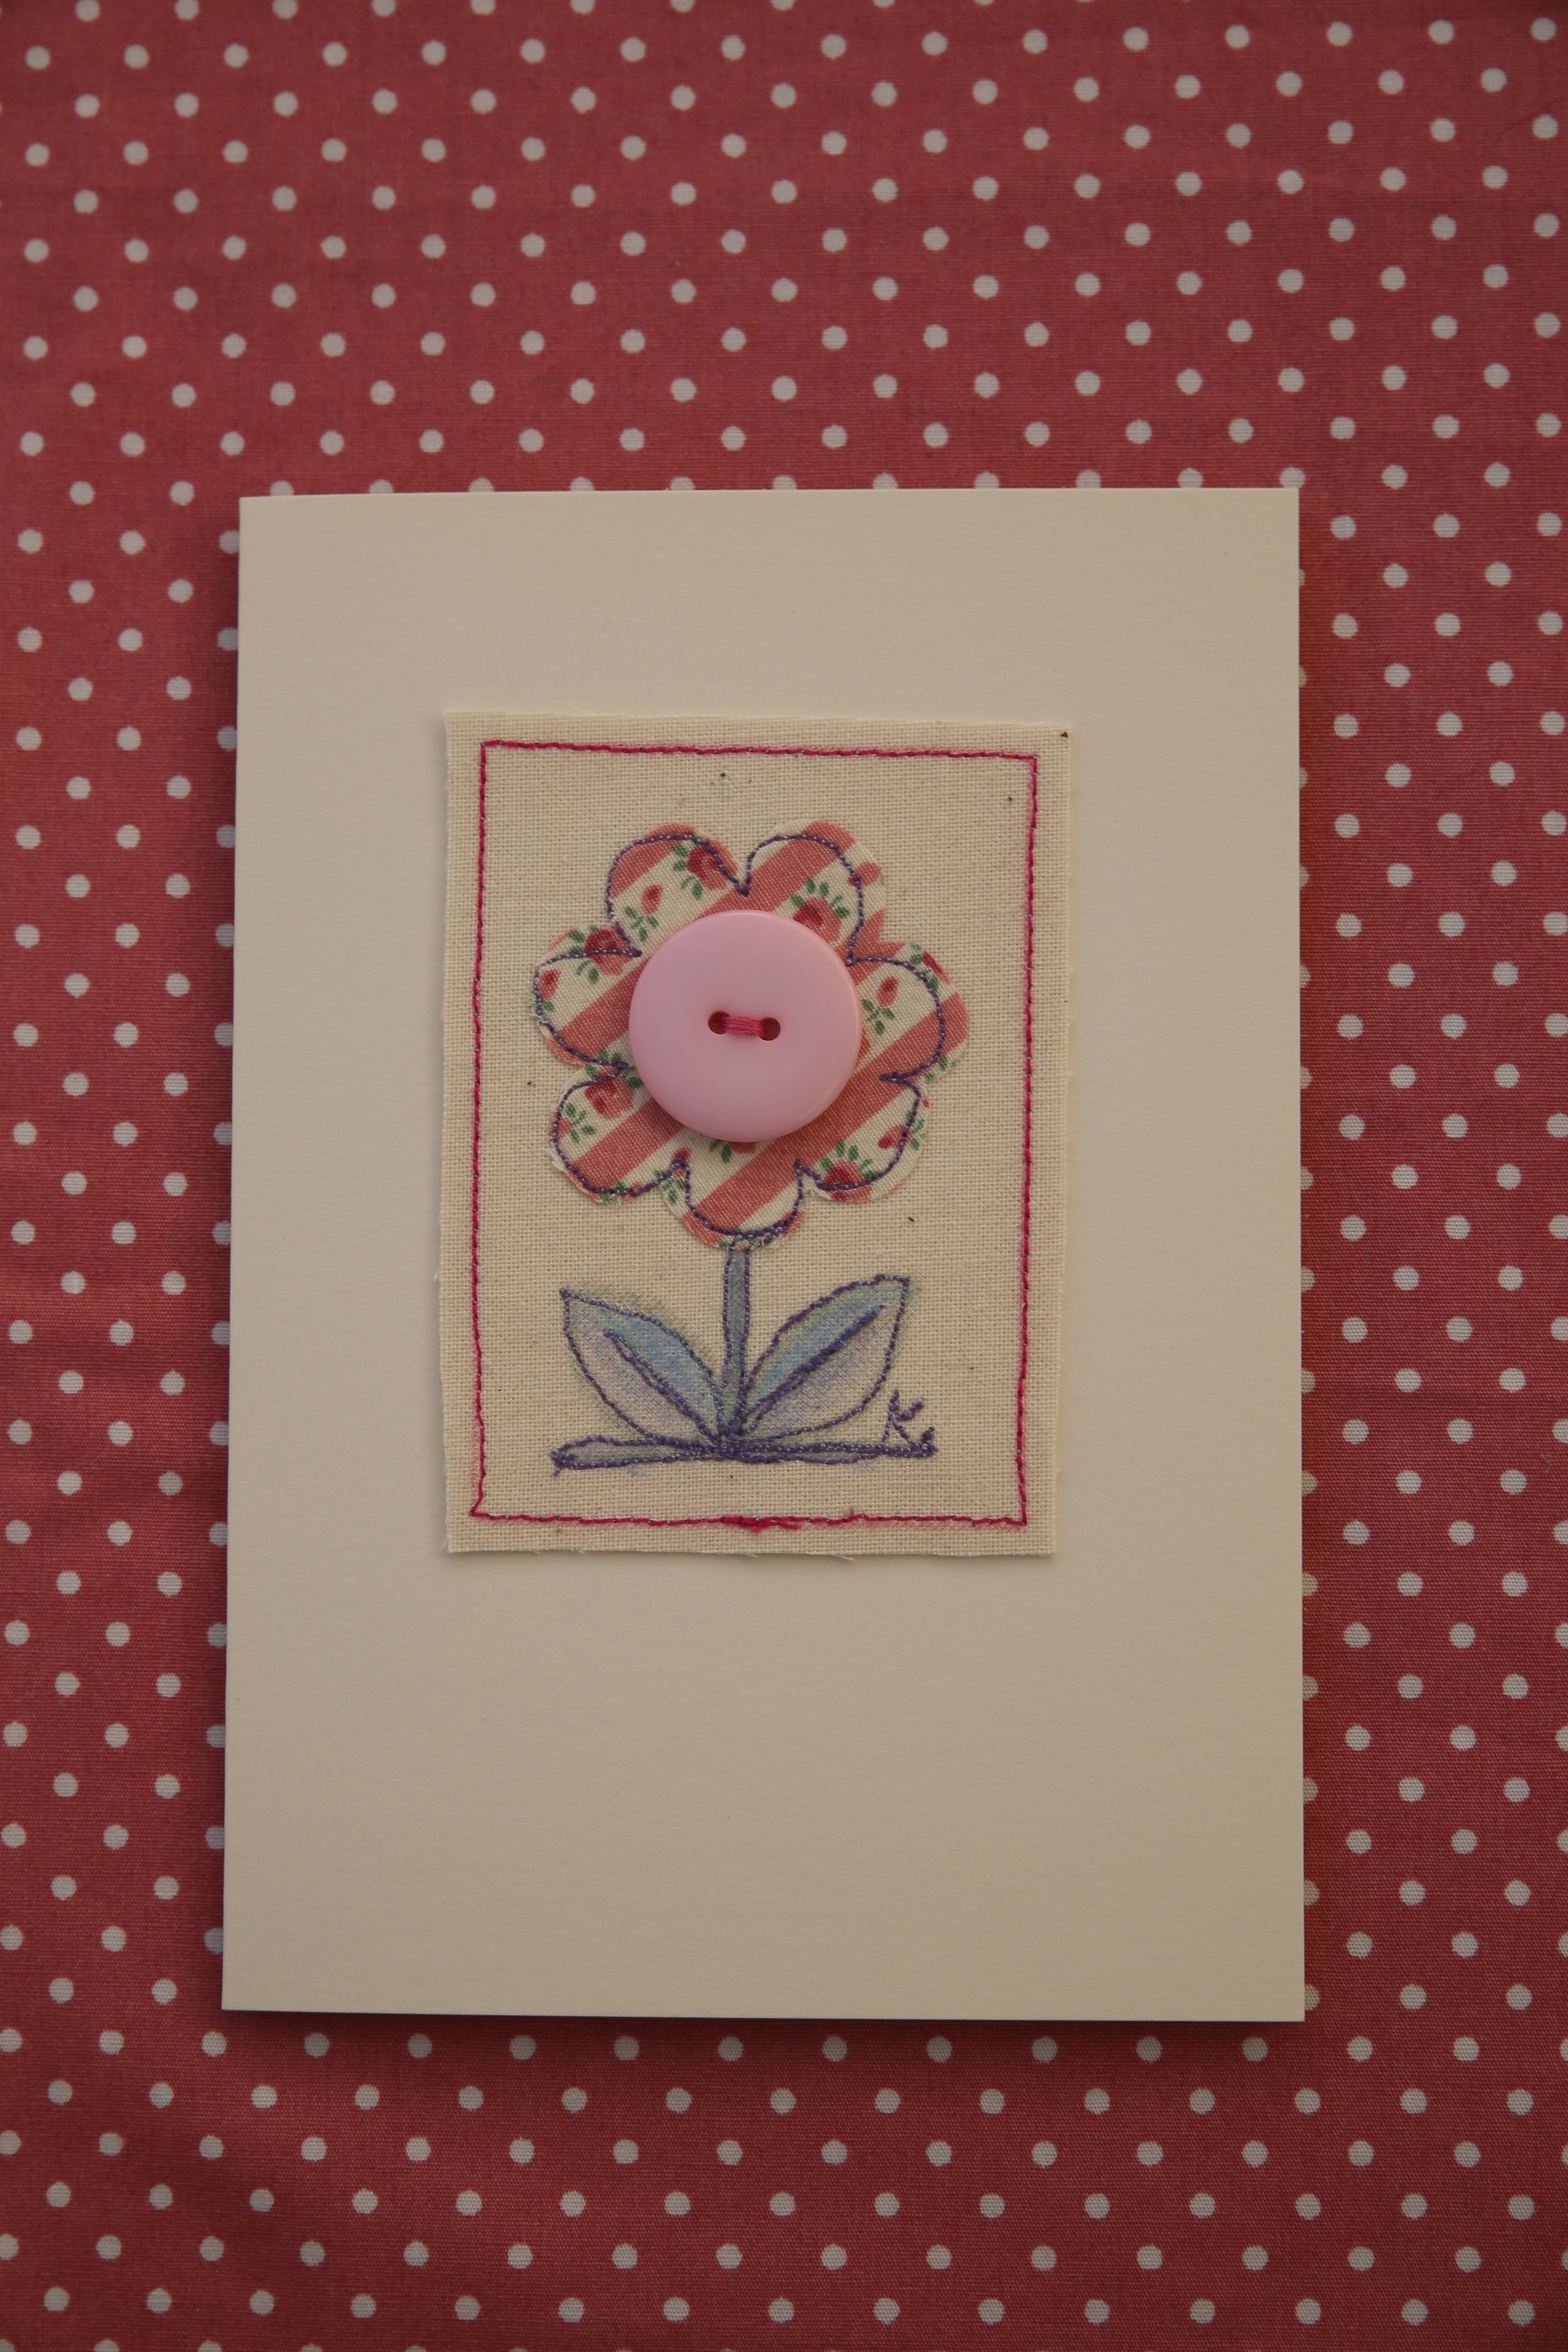 One of my freehand machine embroidery cards crafty ideas one of my freehand machine embroidery cards kristyandbryce Image collections